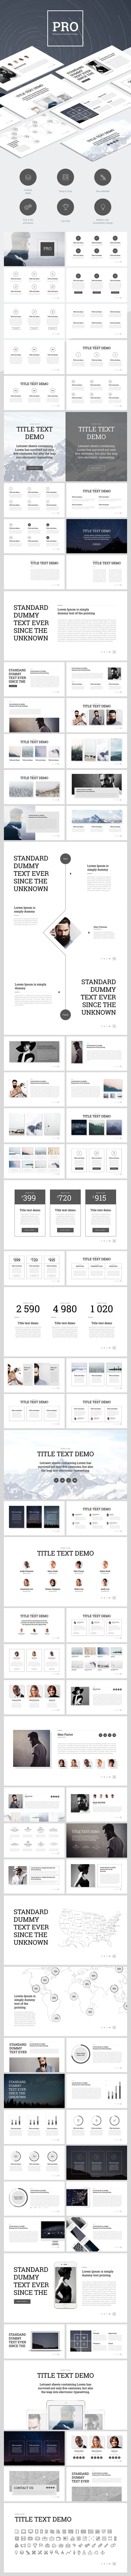 49 best powerpoint templates images on pinterest | website, Presentation templates